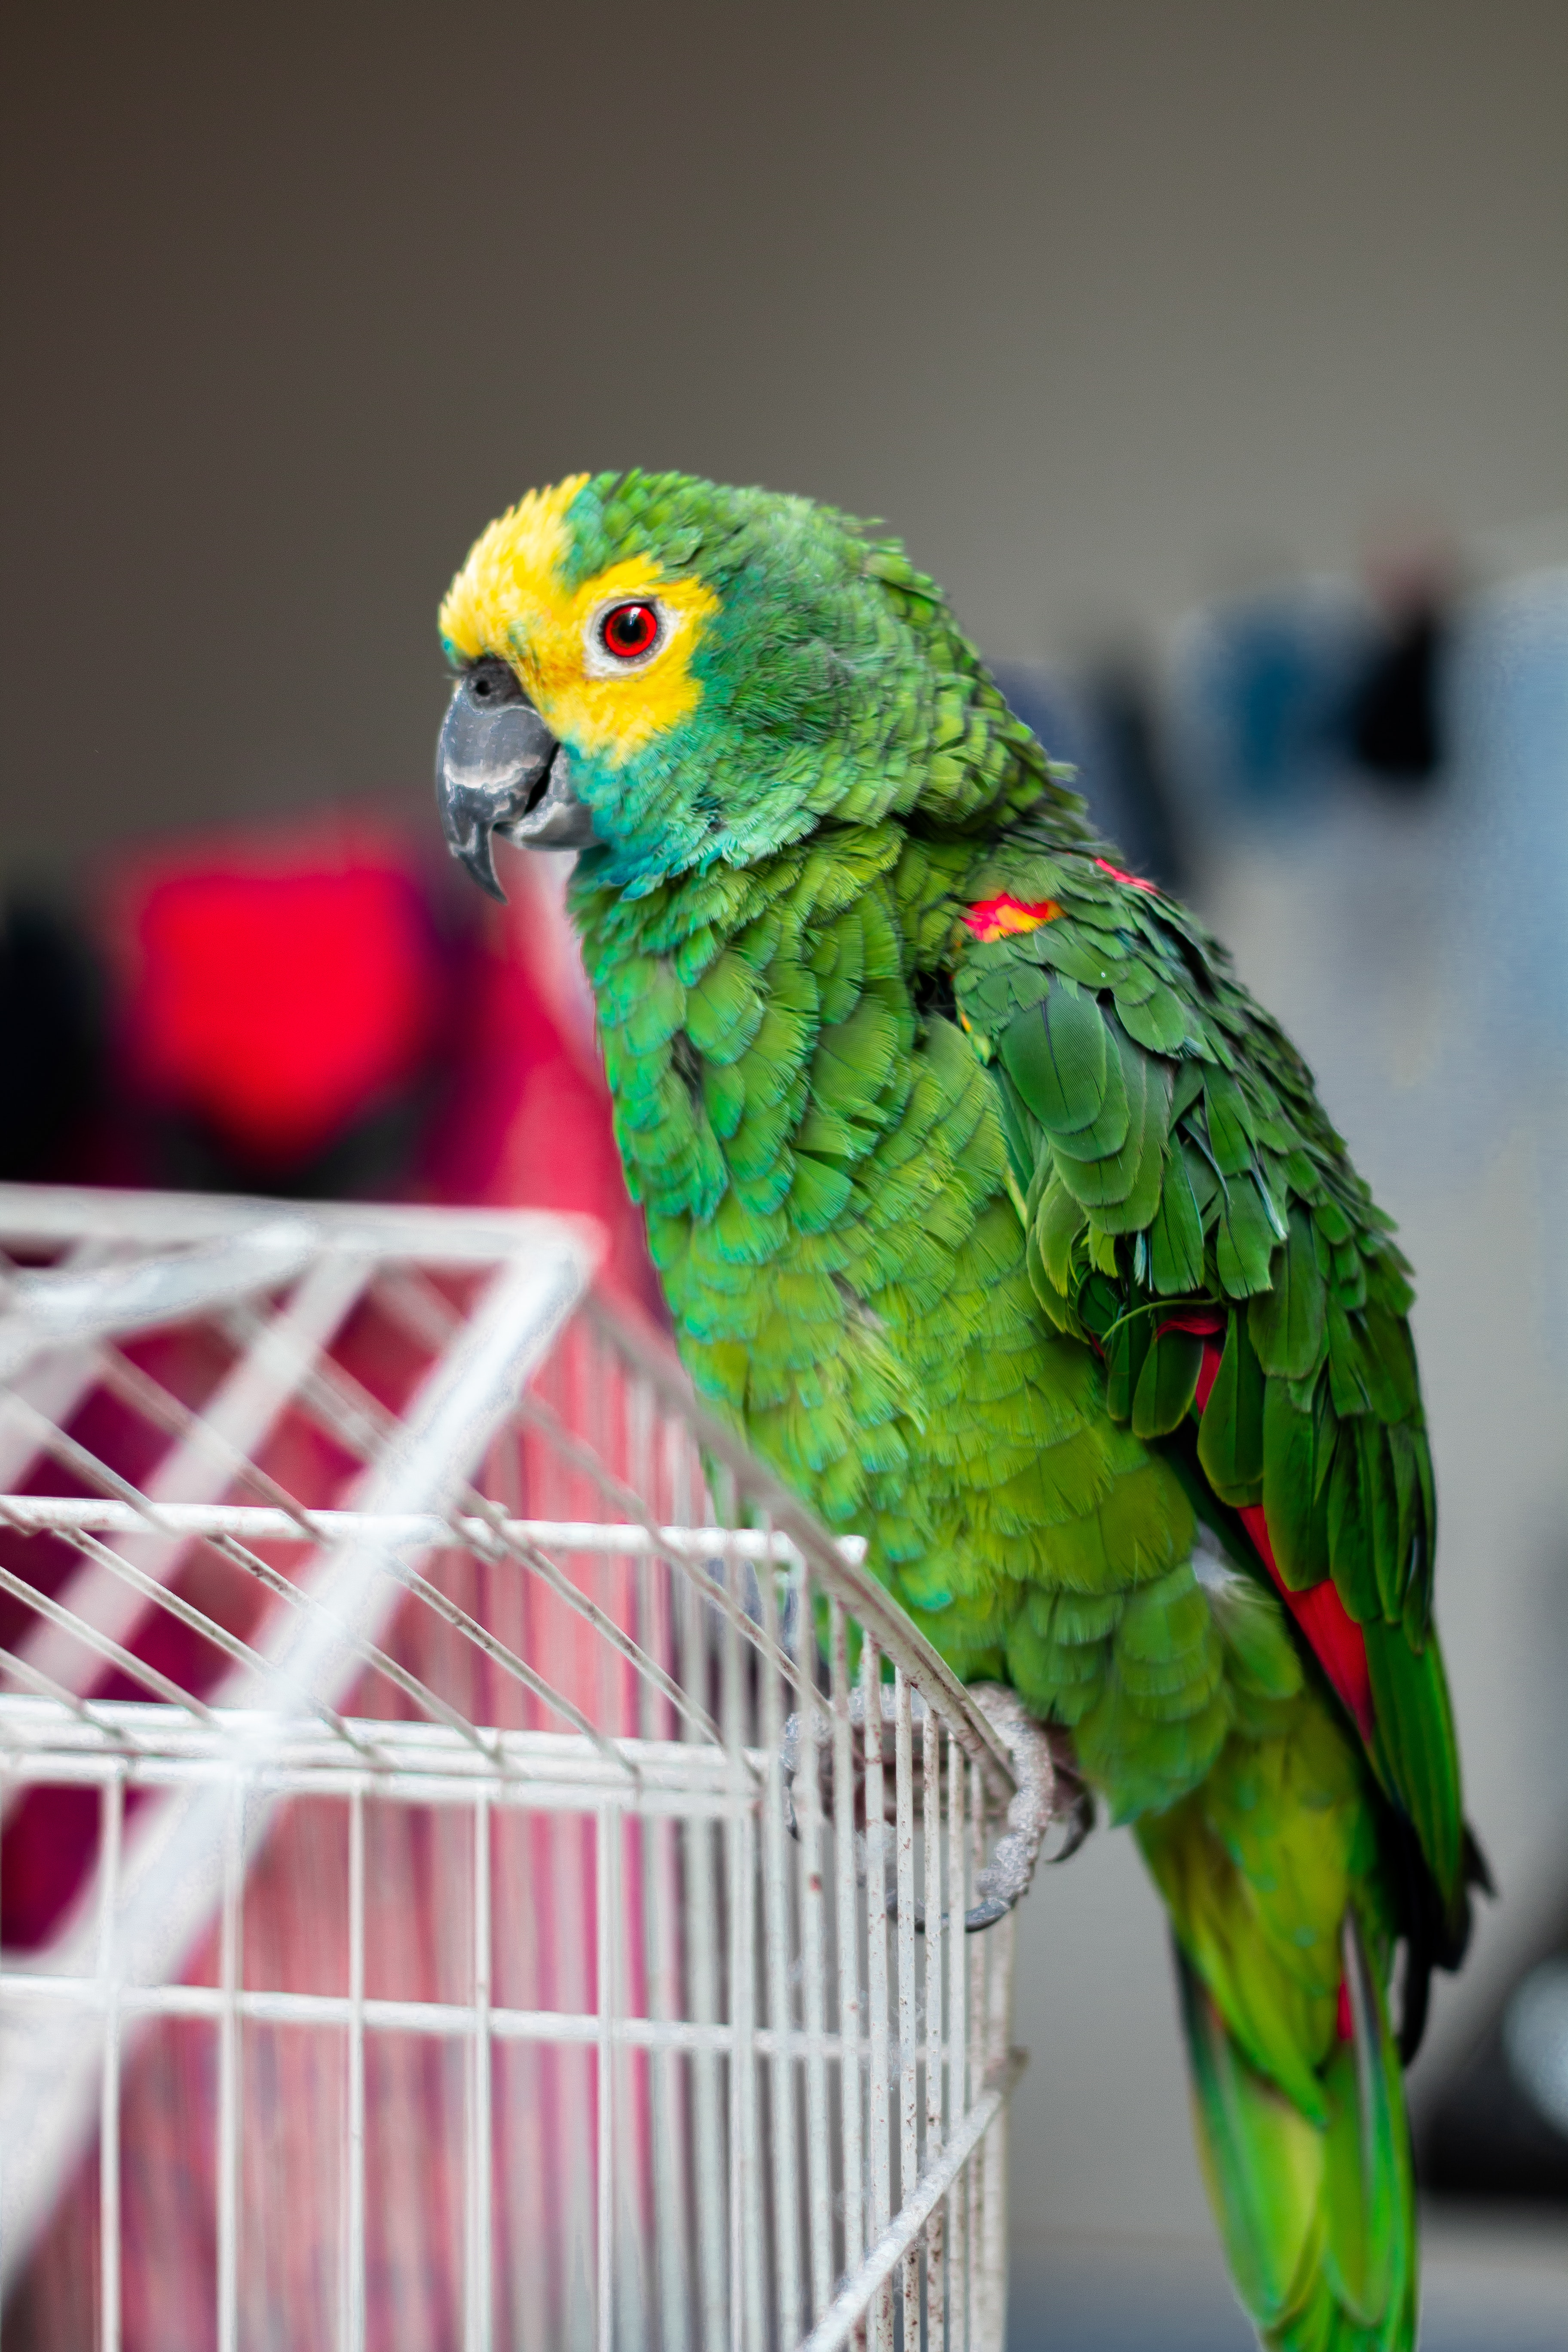 Green parrot sitting on a cage. | Source: Pexels